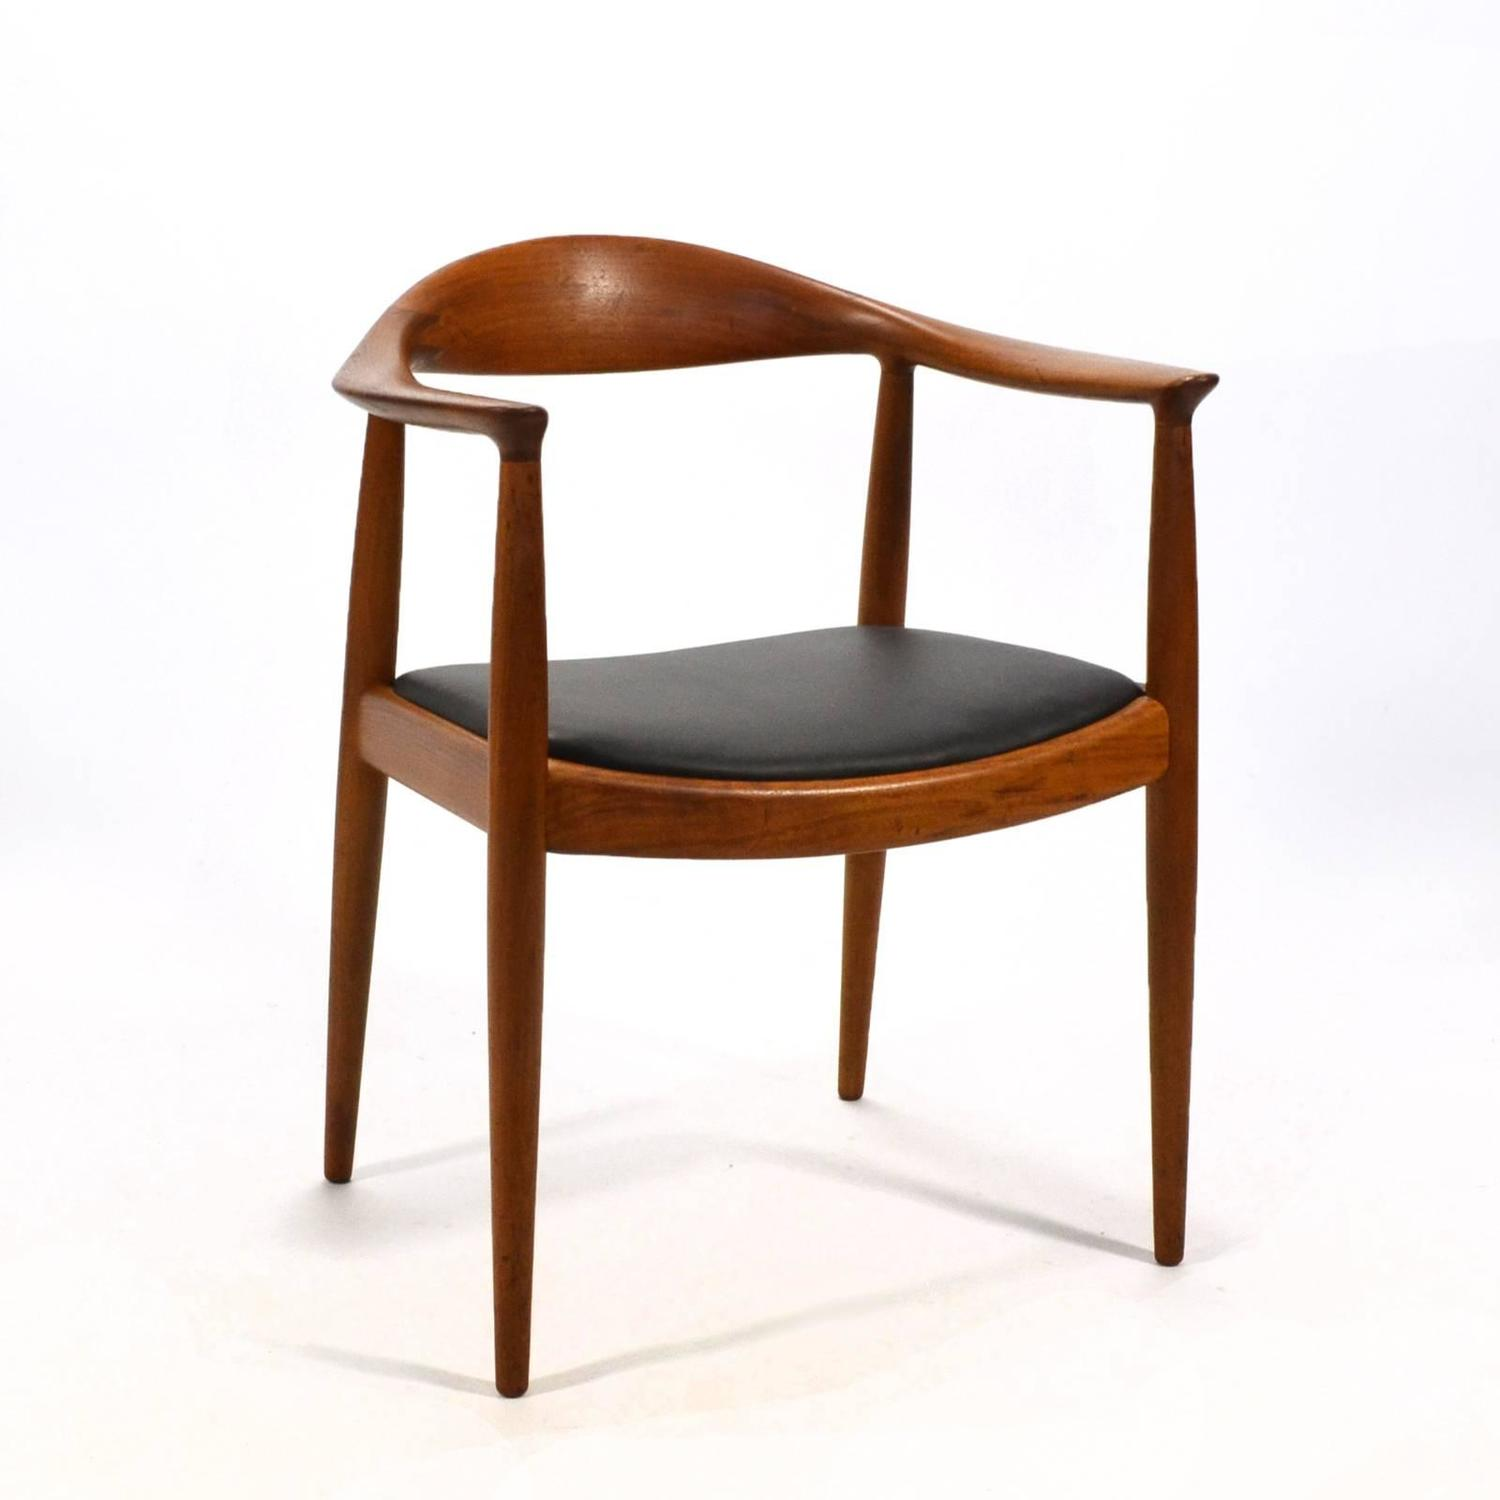 Hans Wegner Round Chair The Chair By Johannes Hansen For Sale At 1stdibs